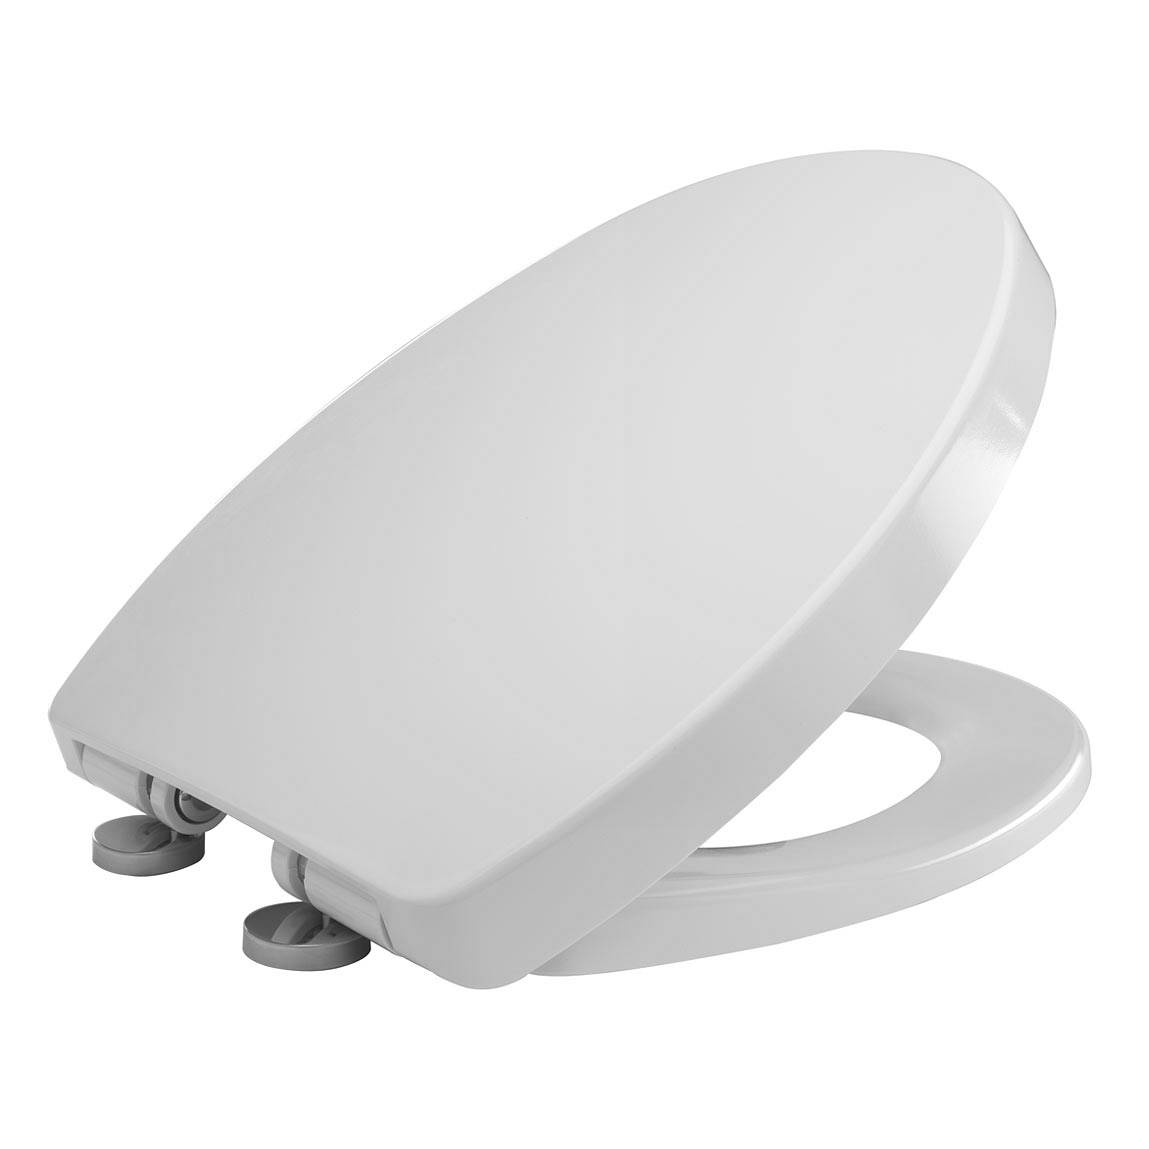 Image of Deluxe 105 Thermoset Anti Scratch Soft Close Toilet Seat